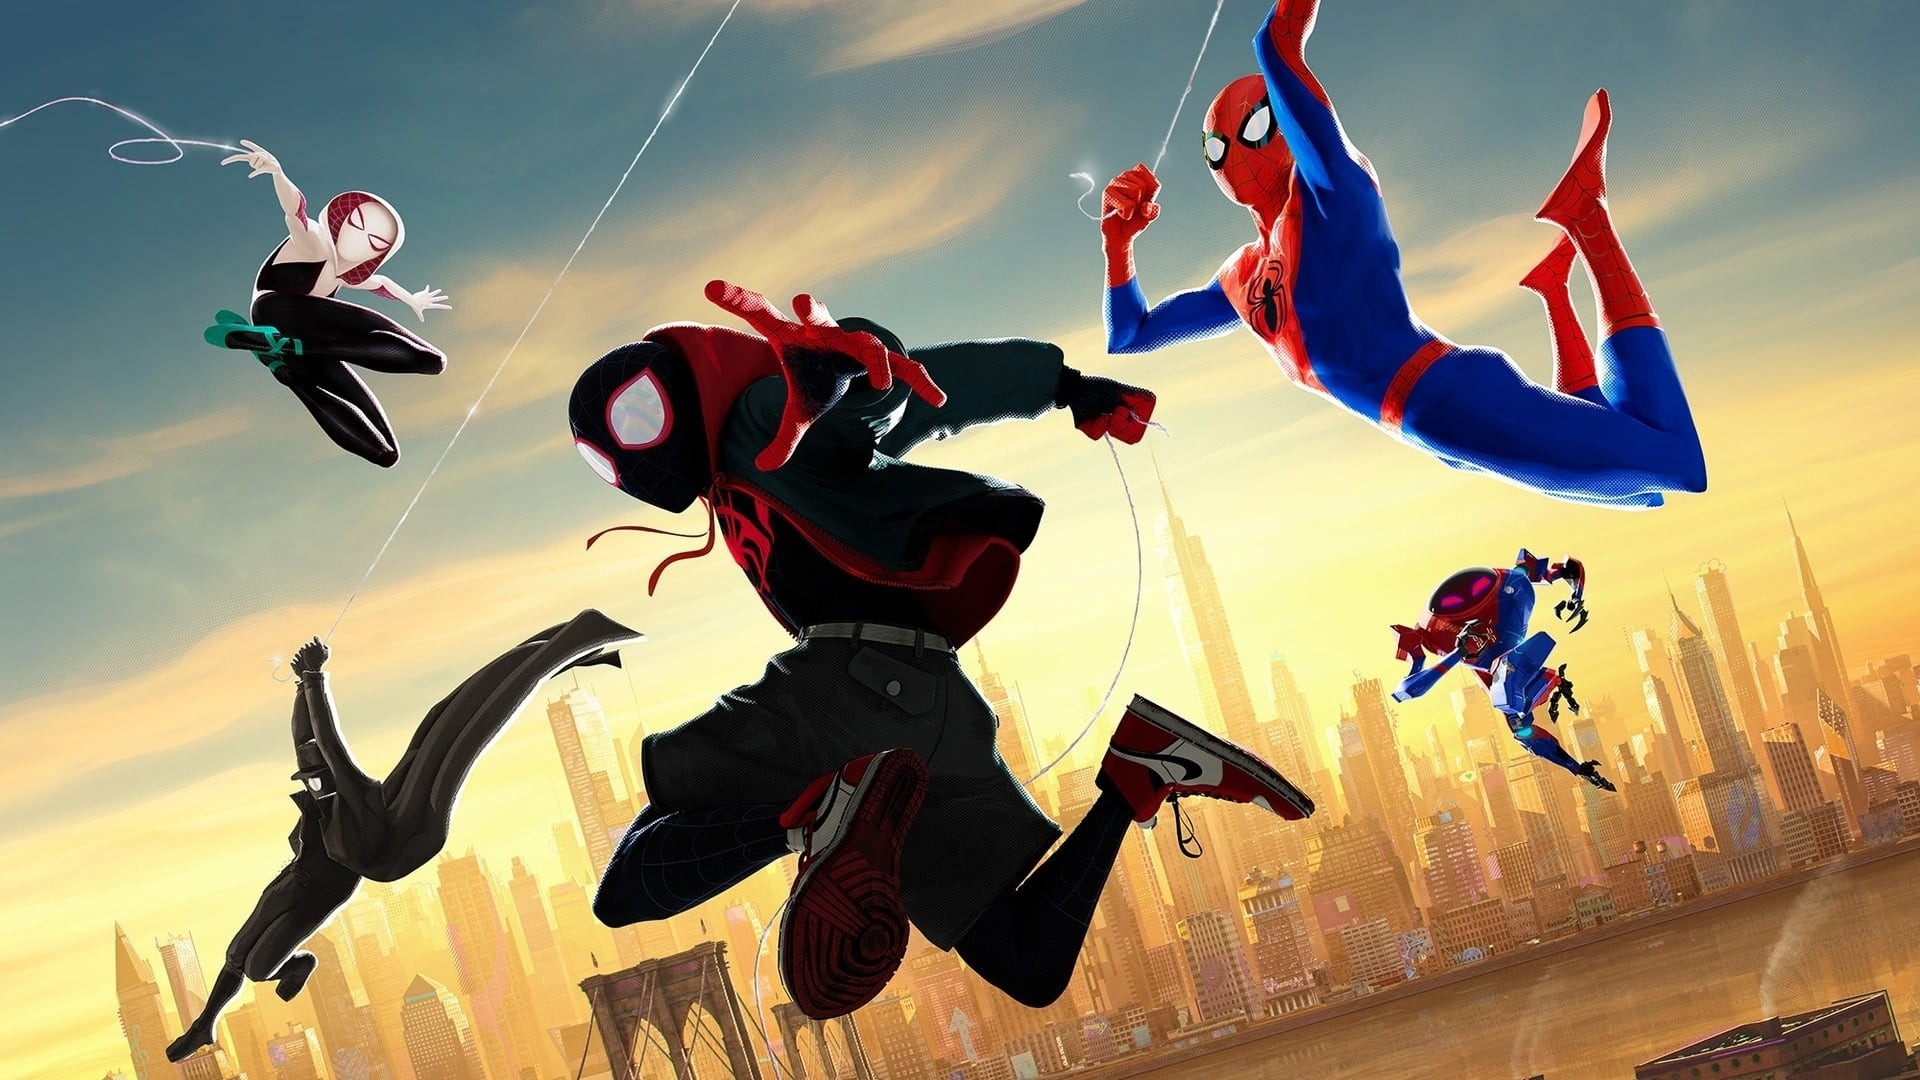 Into The Spider Verse Wallpaper image hd